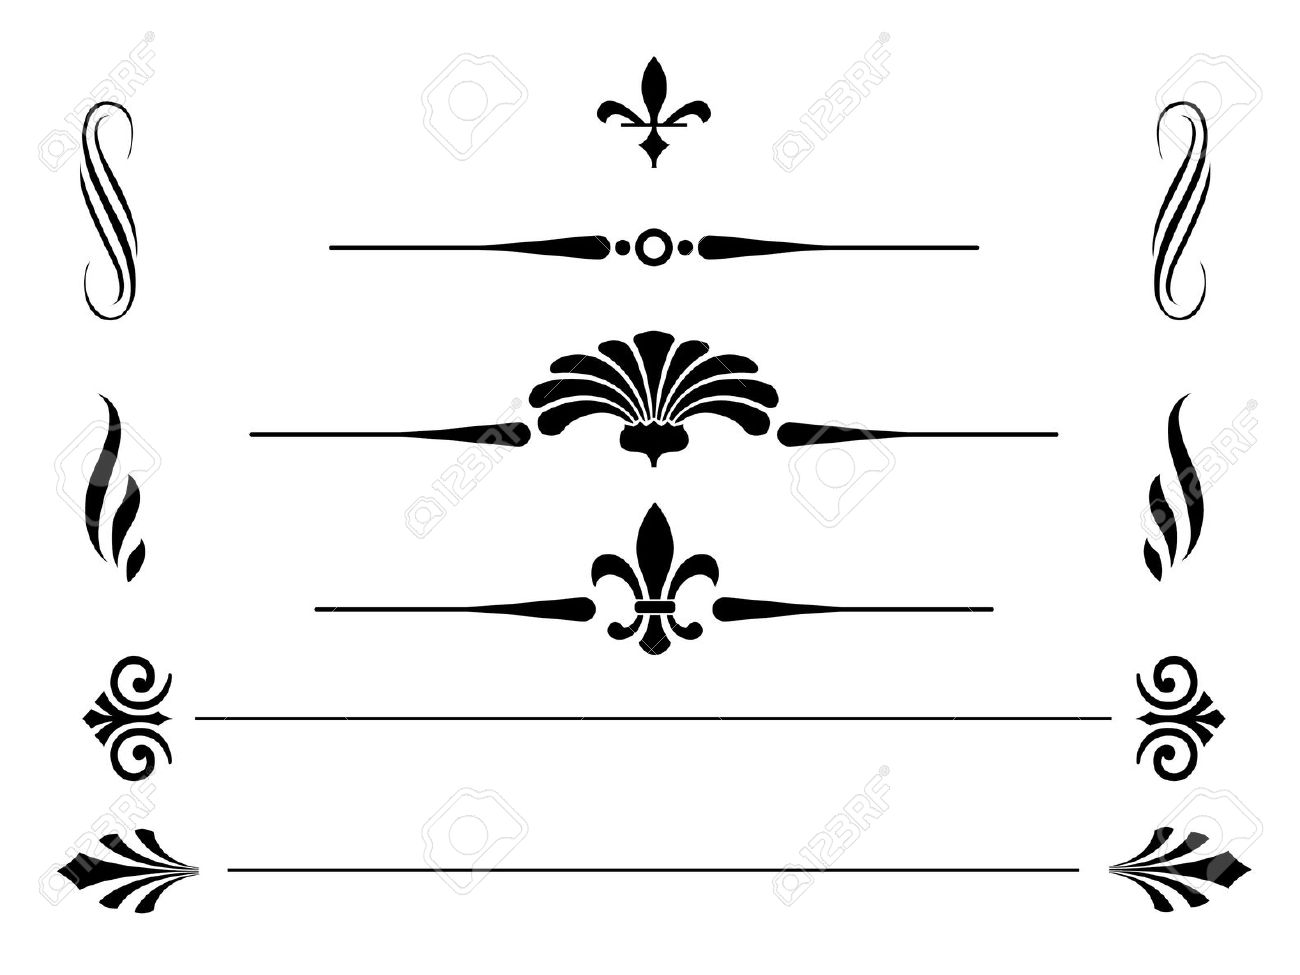 Victorian clipart symbol Borders And Vintage Style Vectors